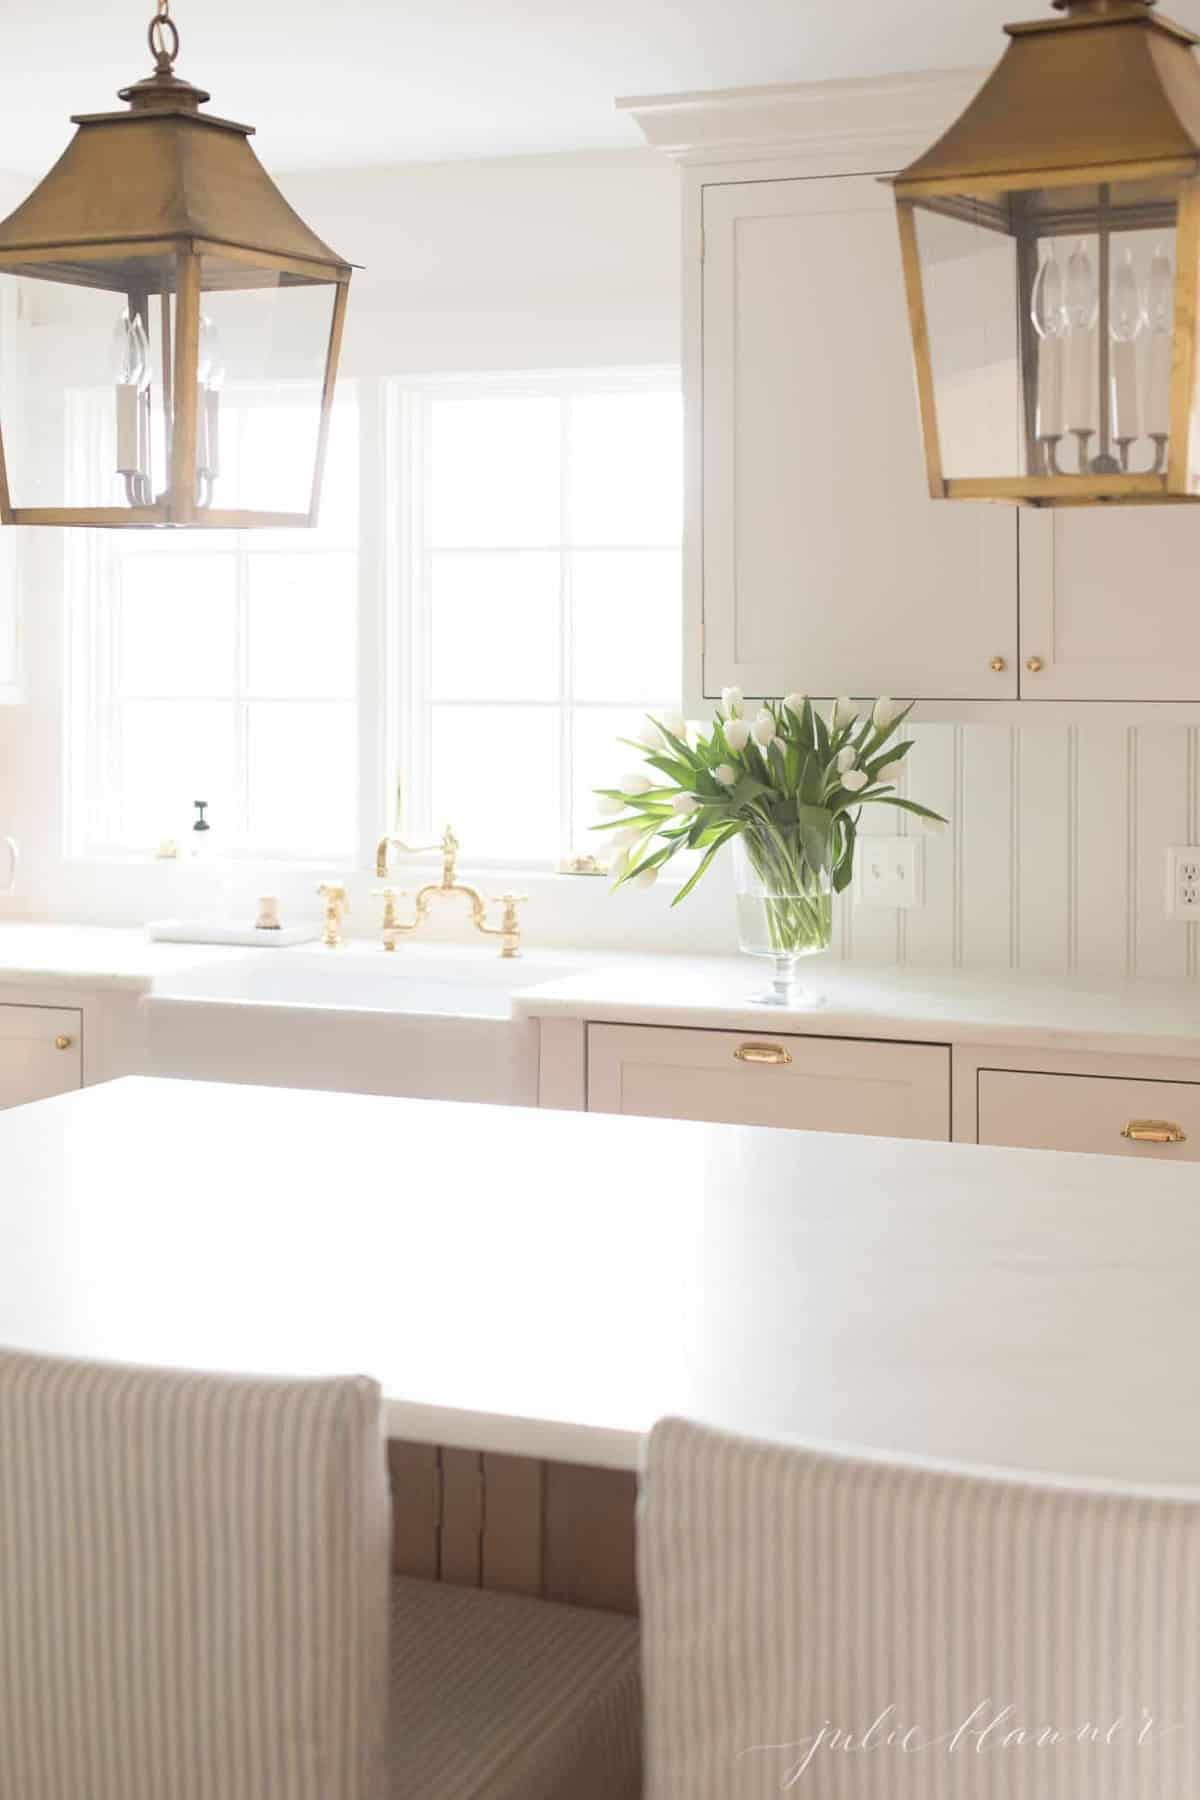 white minimalist kitchen with a single vase of tulips on the counter tops.